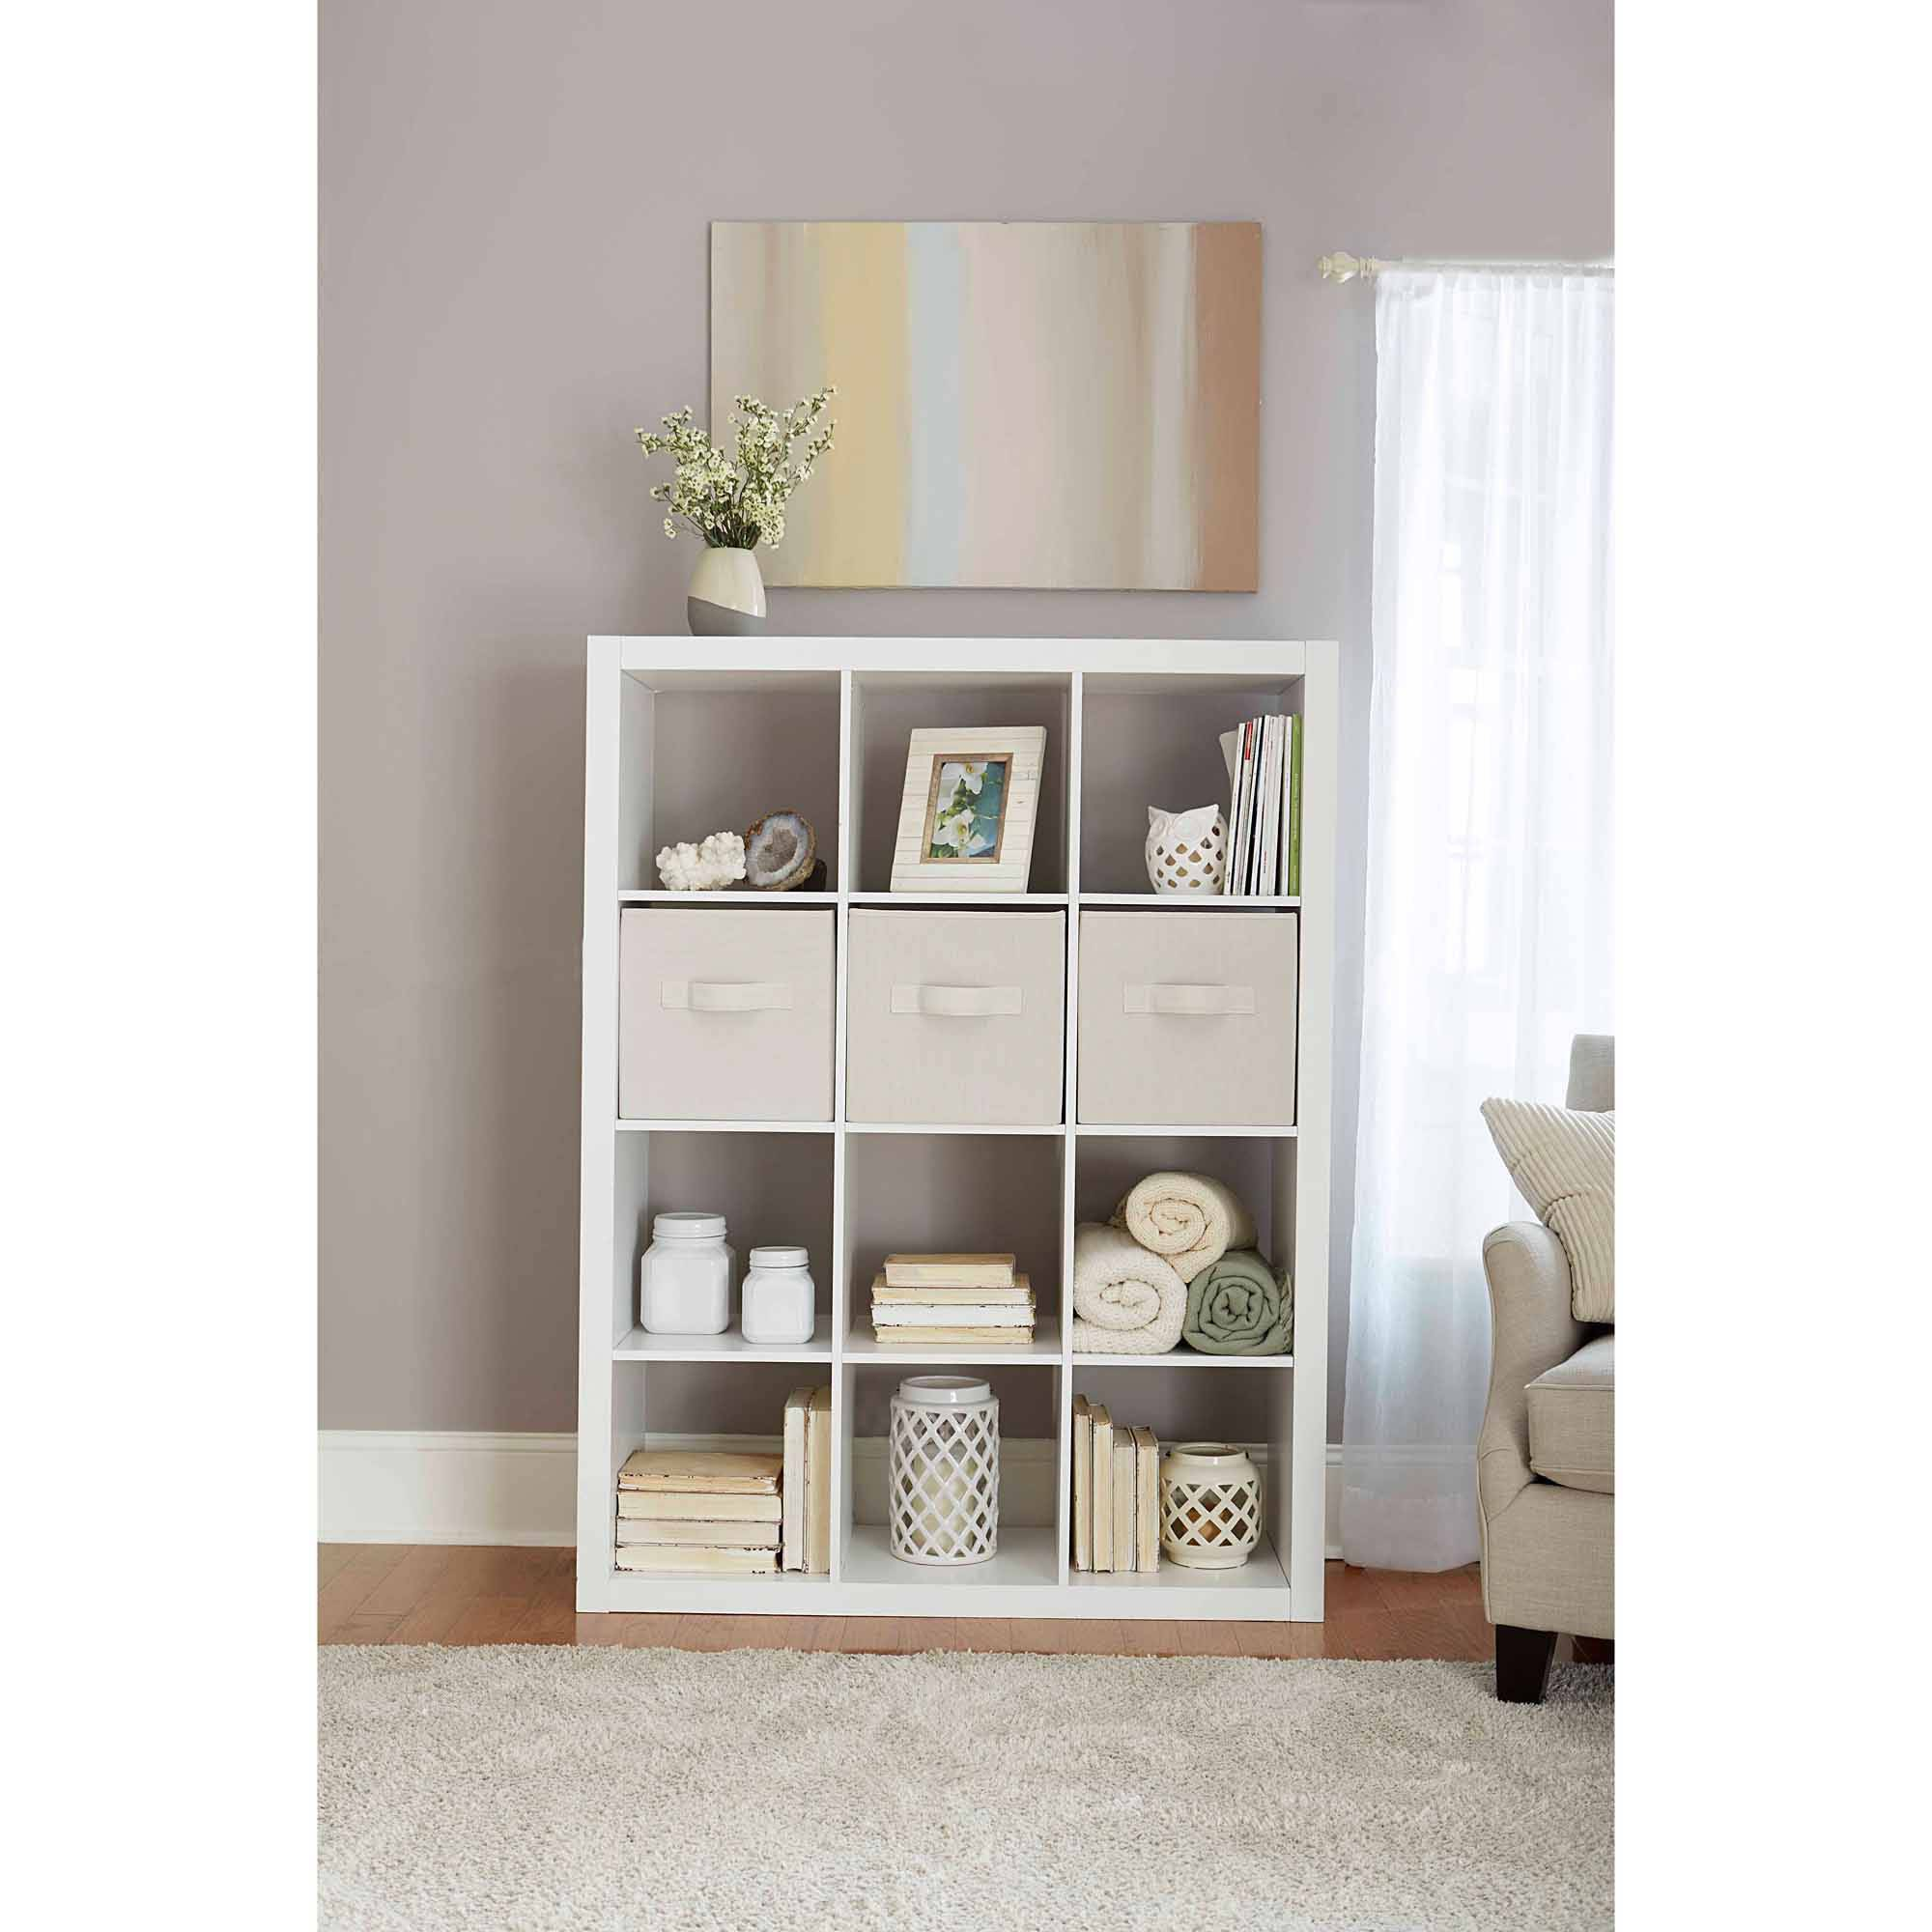 12 cube storage organizer white bookcase bookshelf modular furniture closet new